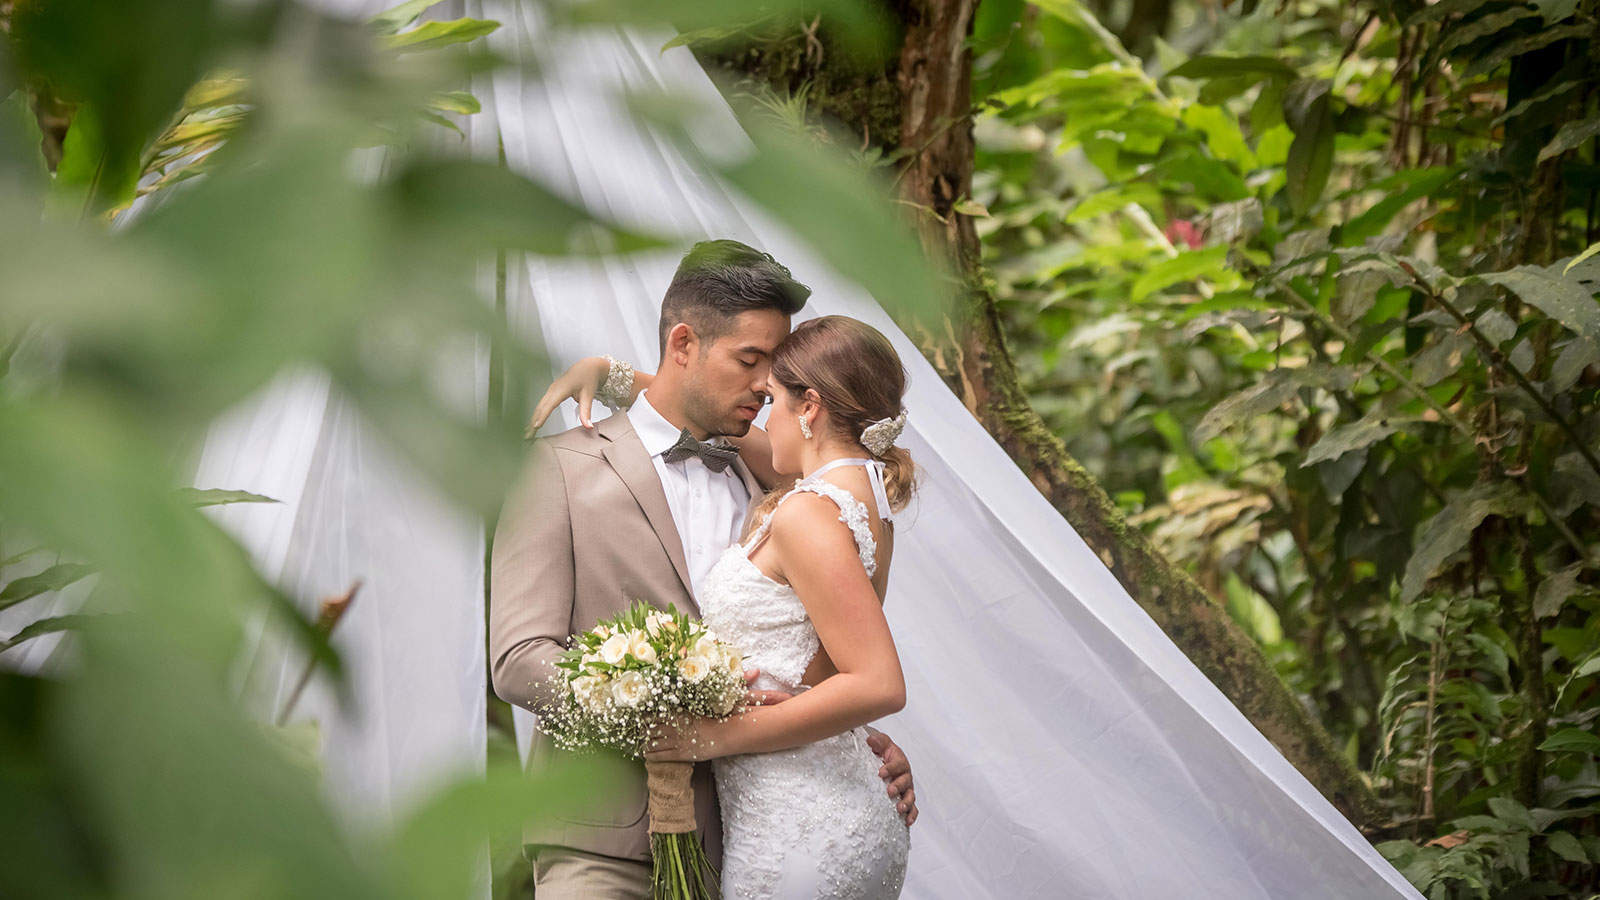 Double wedding soundtrack - Double Wedding Soundtrack The Cloud Forest